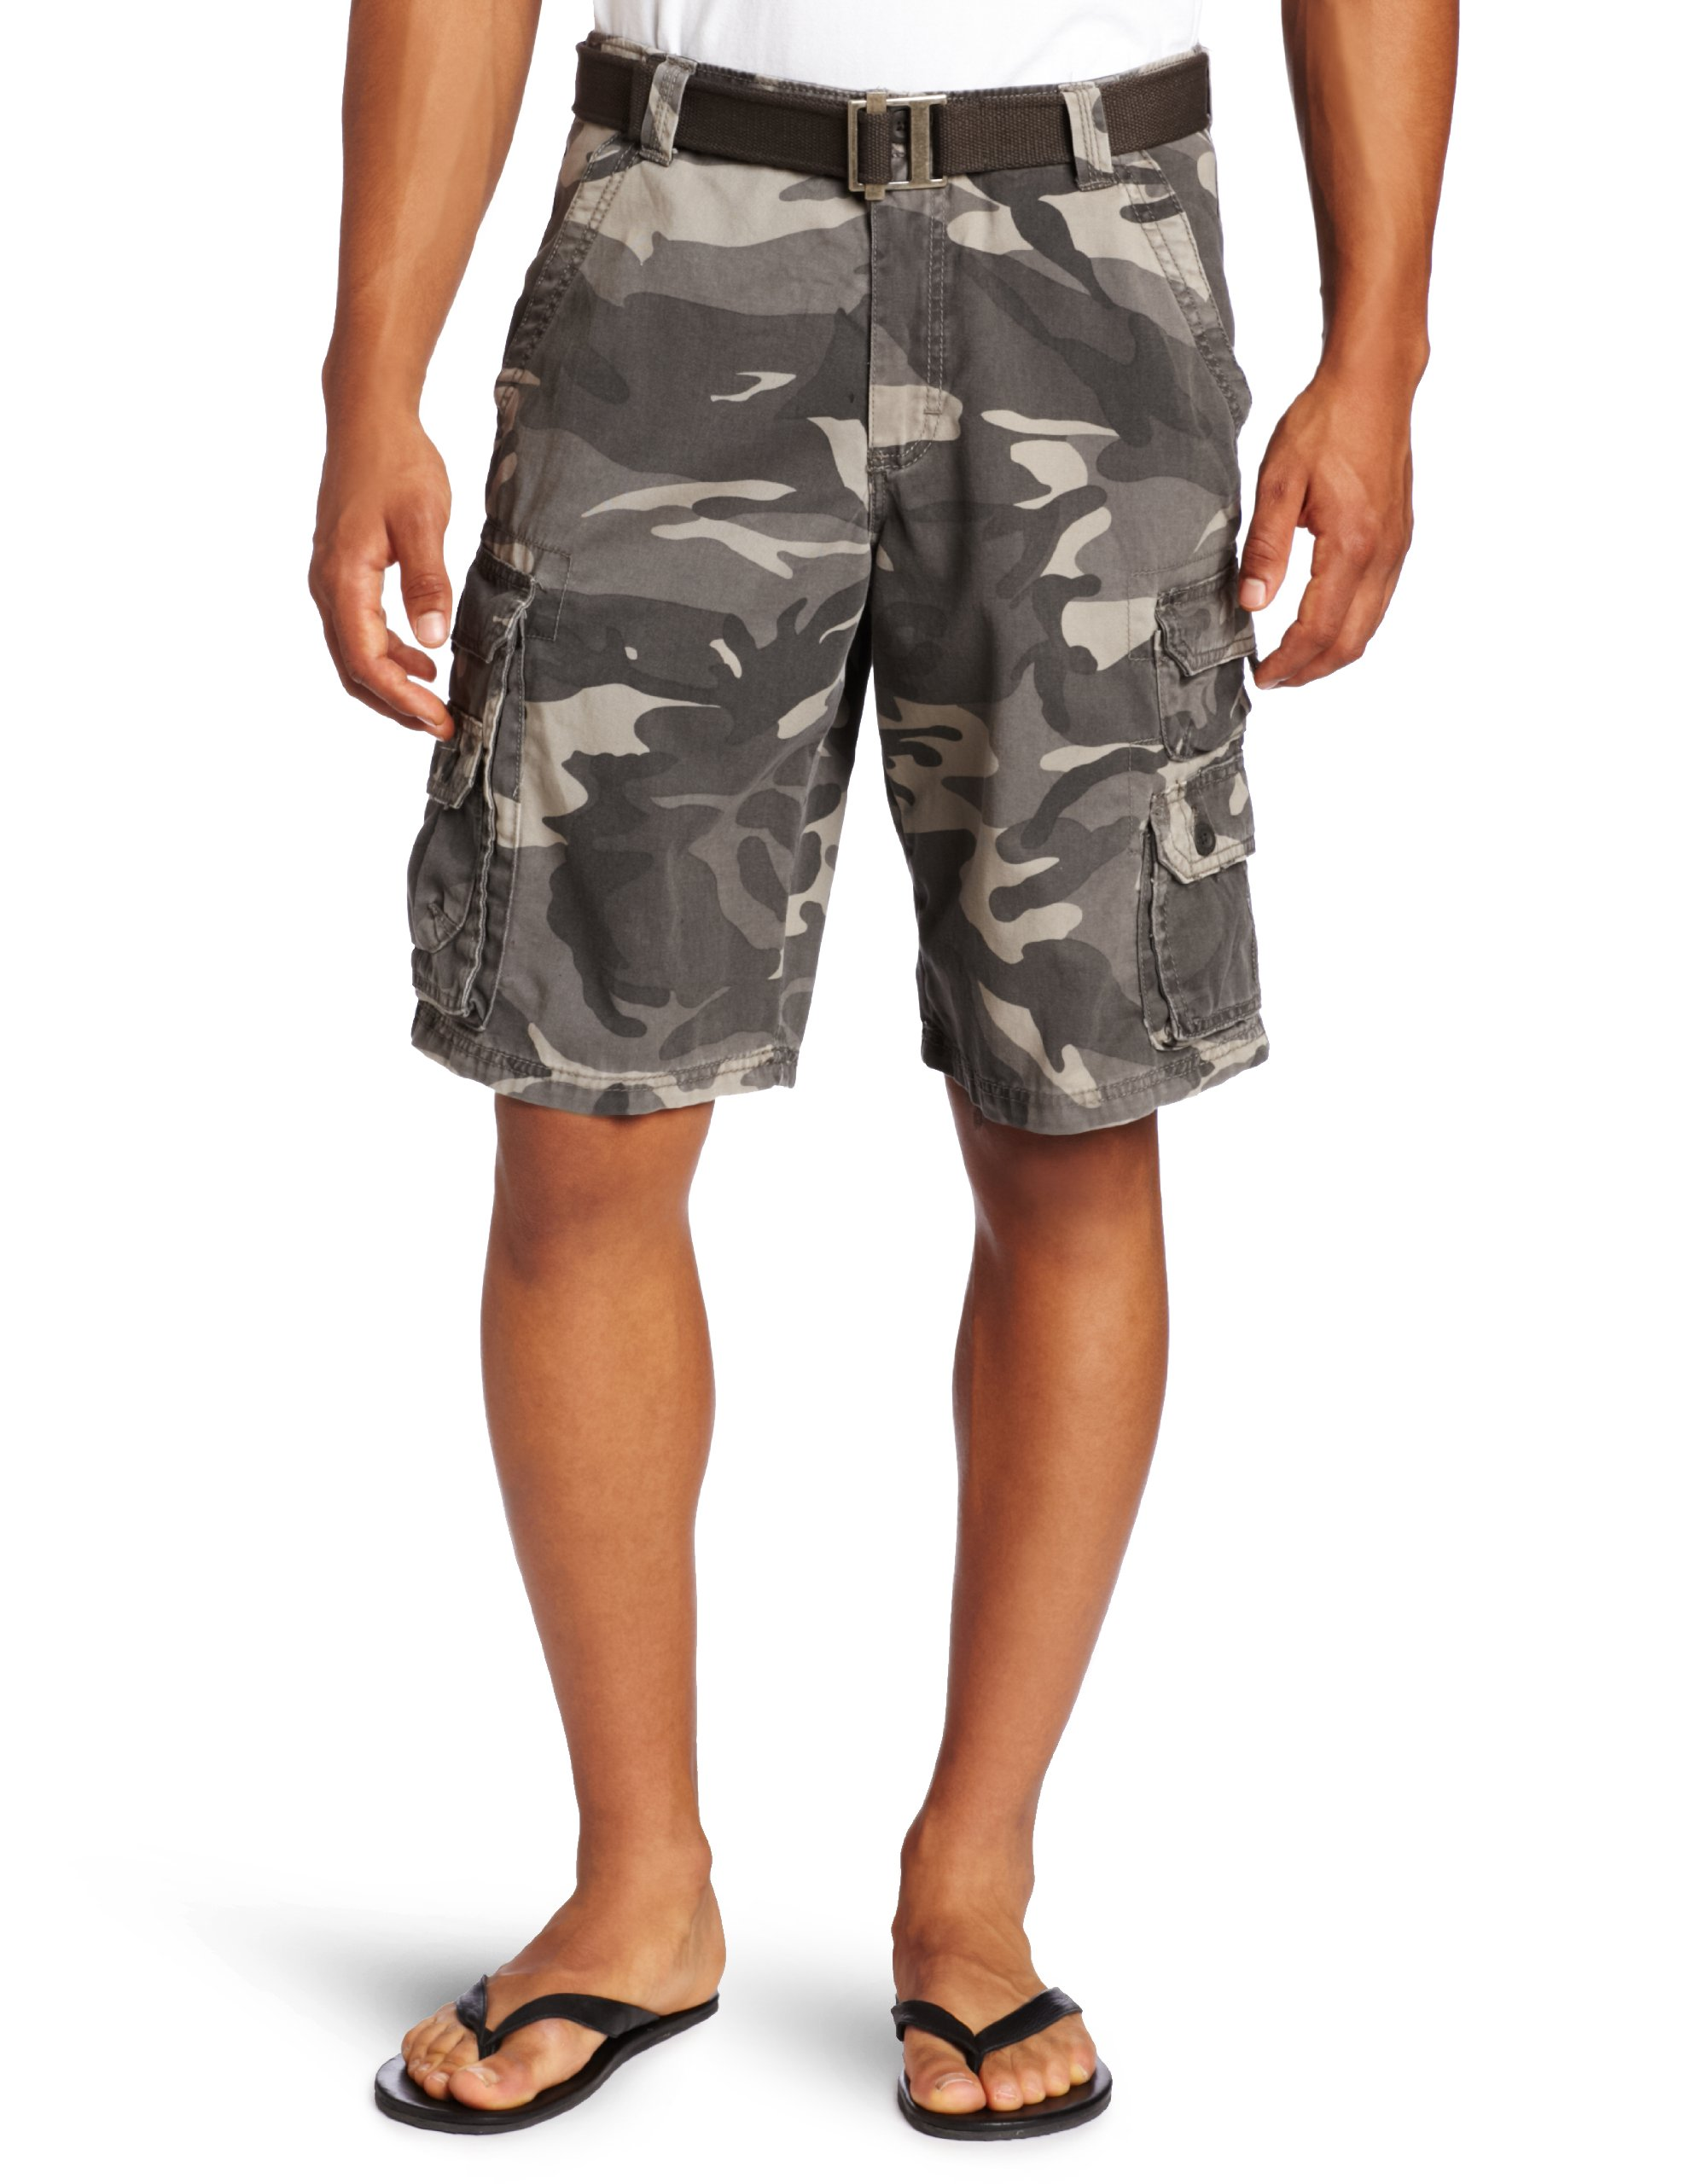 LEE Men's Dungarees Belted Wyoming Cargo Short, Ash Camo, 34